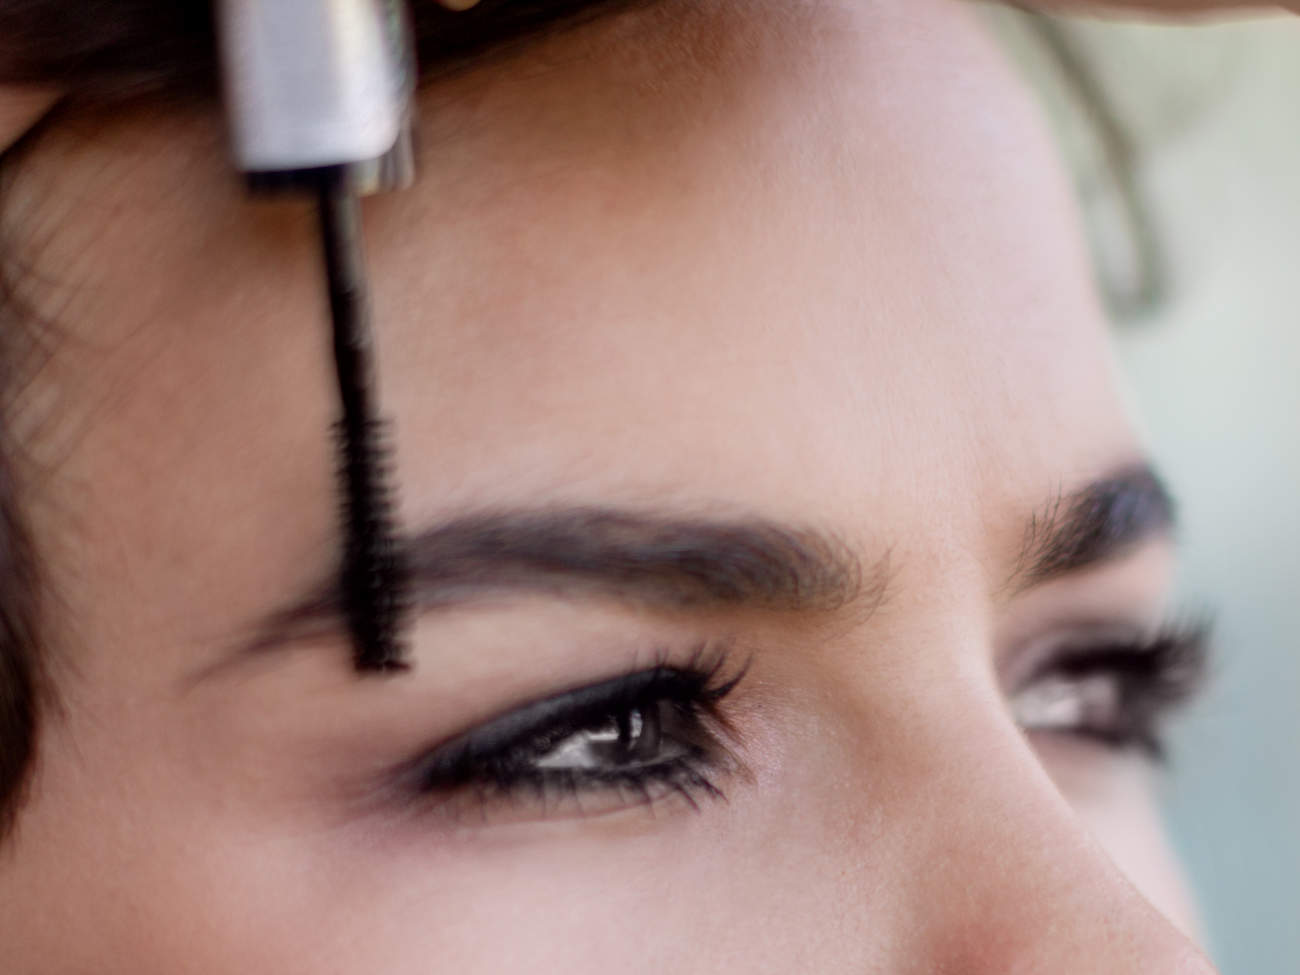 eyebrow-gel-application-GettyImages-835182348